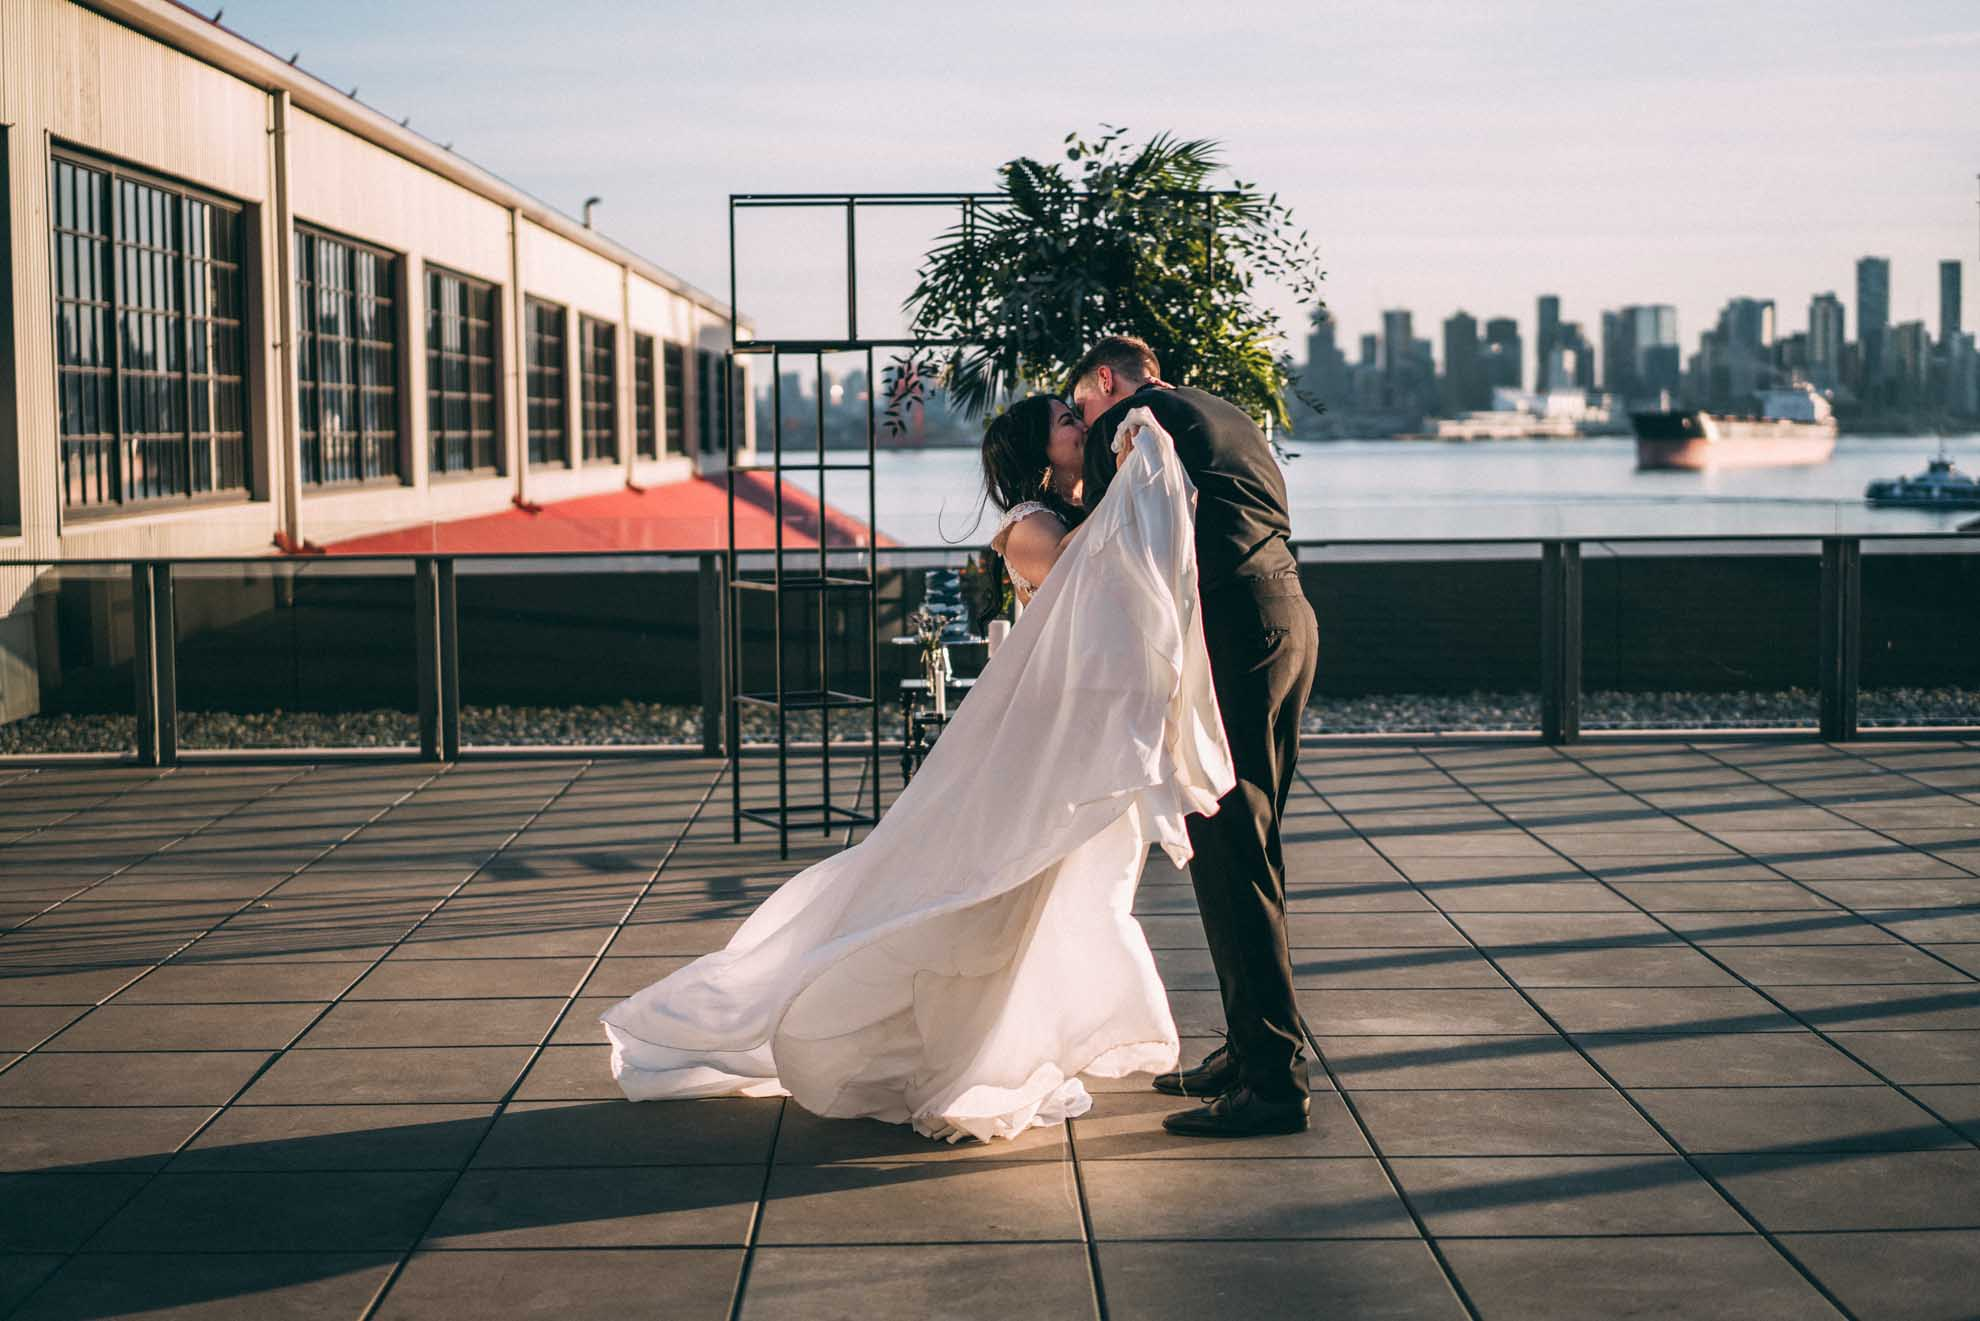 The Maclean's photography queer gay non-binary trans couple wedding elopment videography Vancouver Canada Dancing With Her magazine